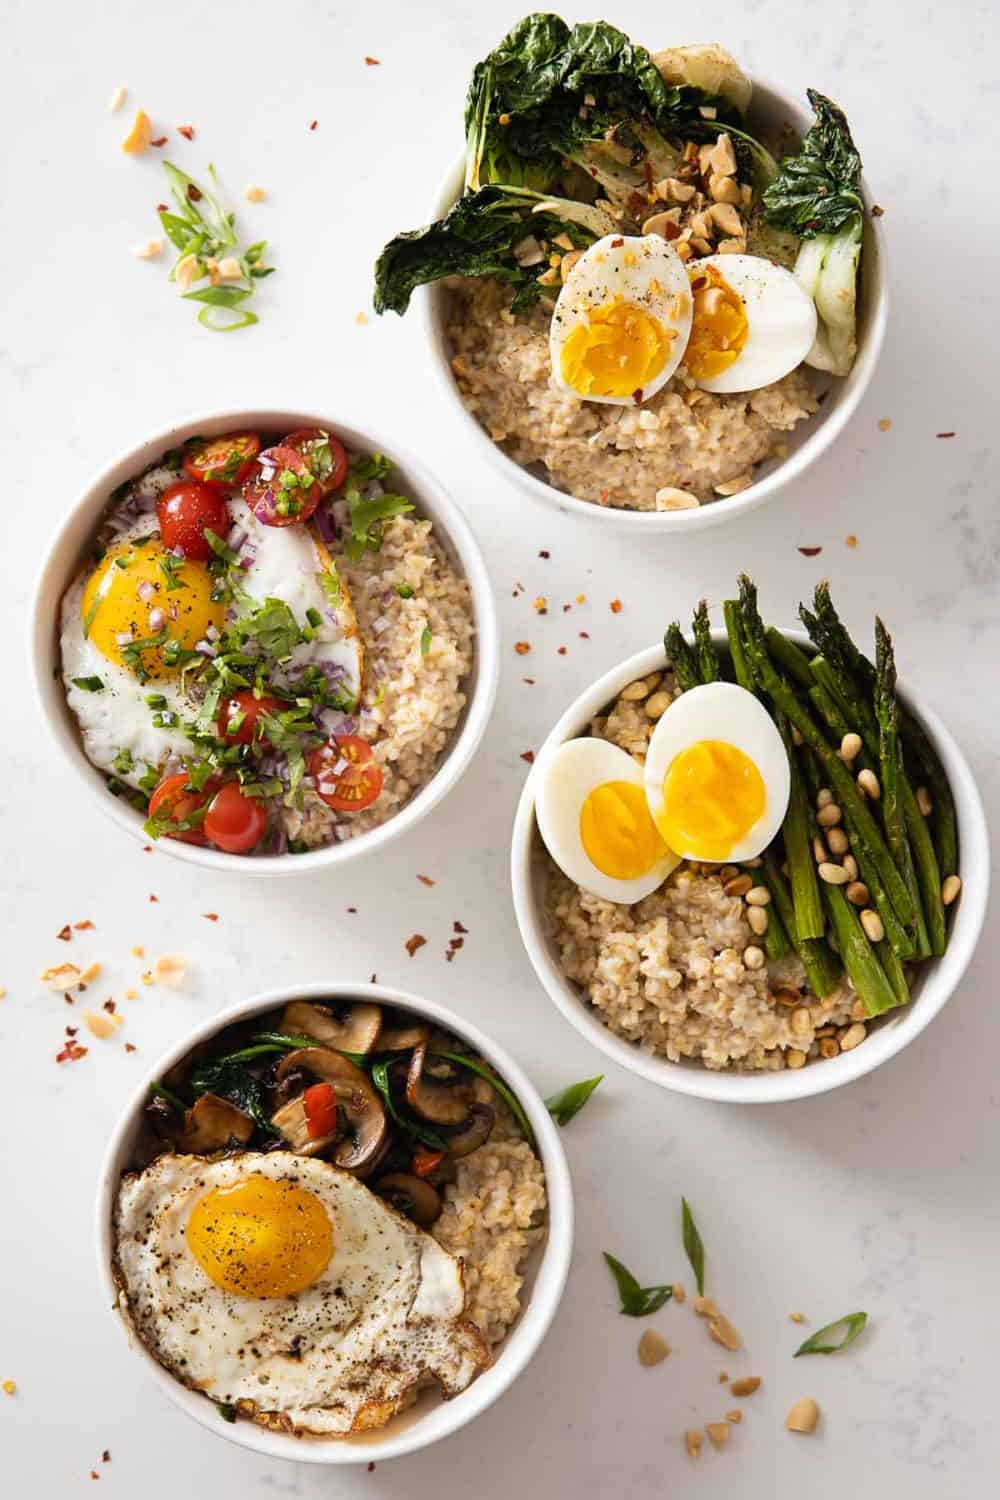 Creamy steel cut oats with savory toppings such as vegetables and eggs.